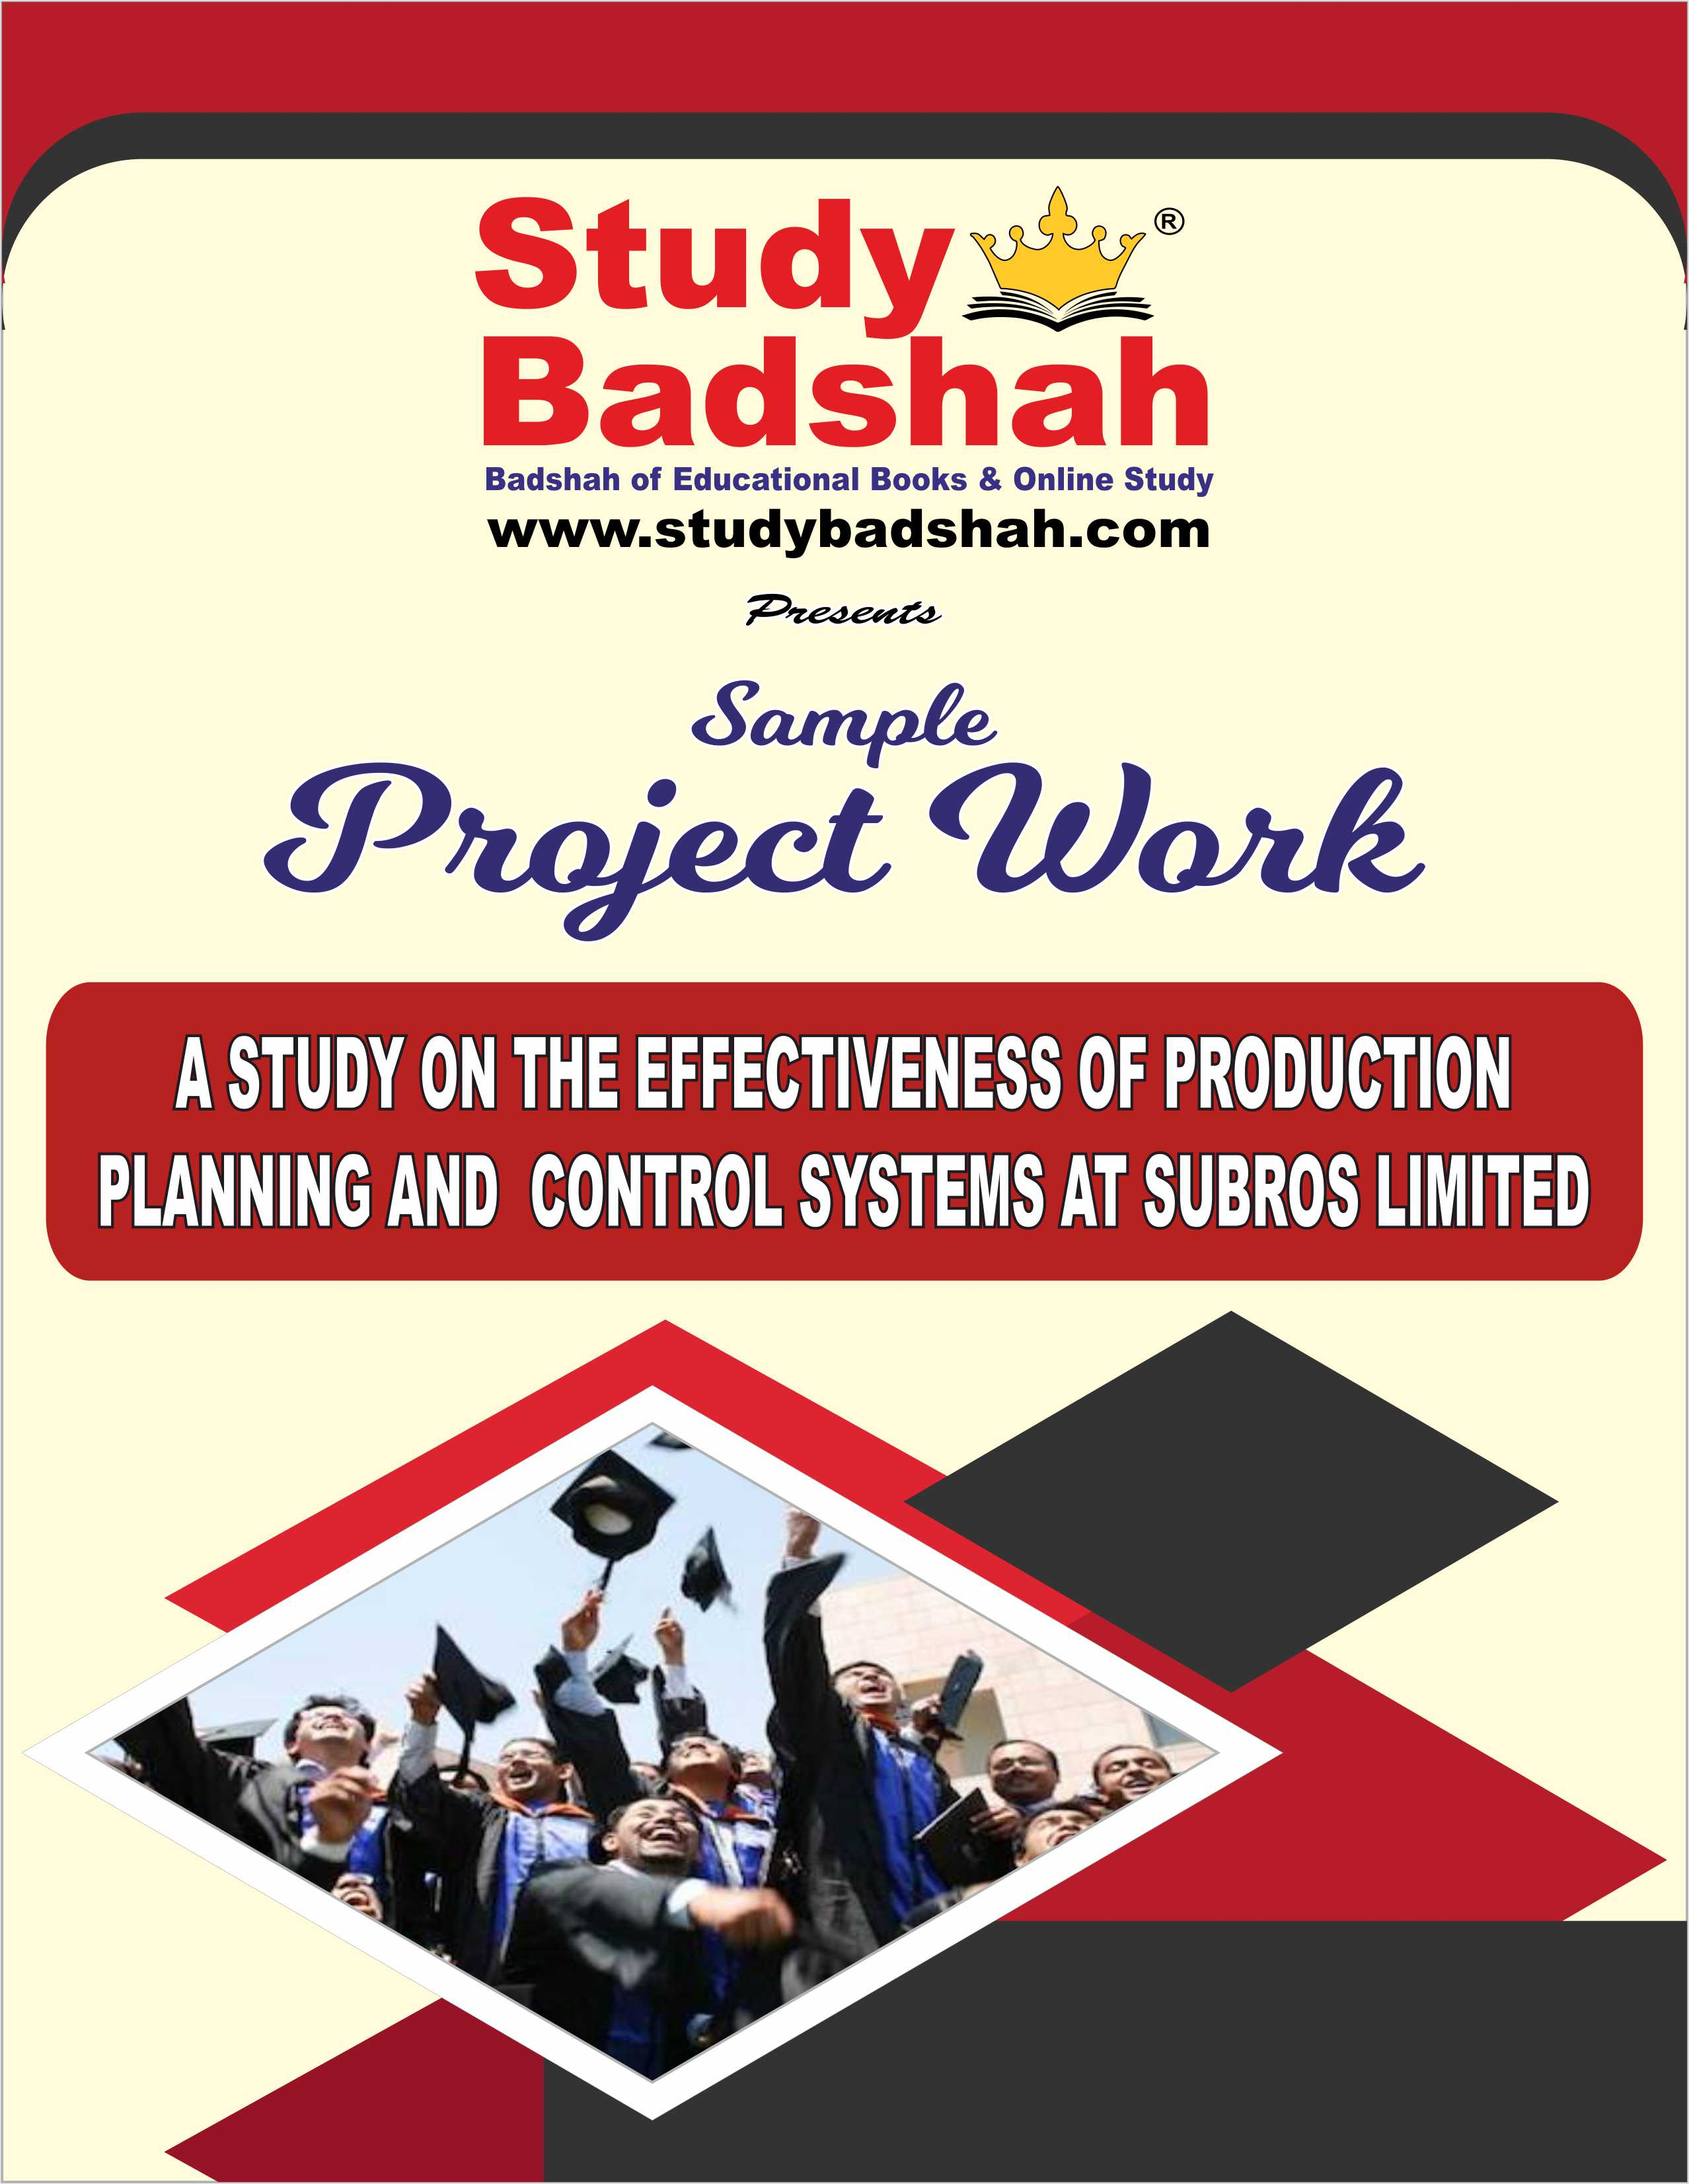 A STUDY ON THE EFFECTIVENESS OF PRODUCTION  PLANNING AND  CONTROL SYSTEMS AT SUBROS LIMITED